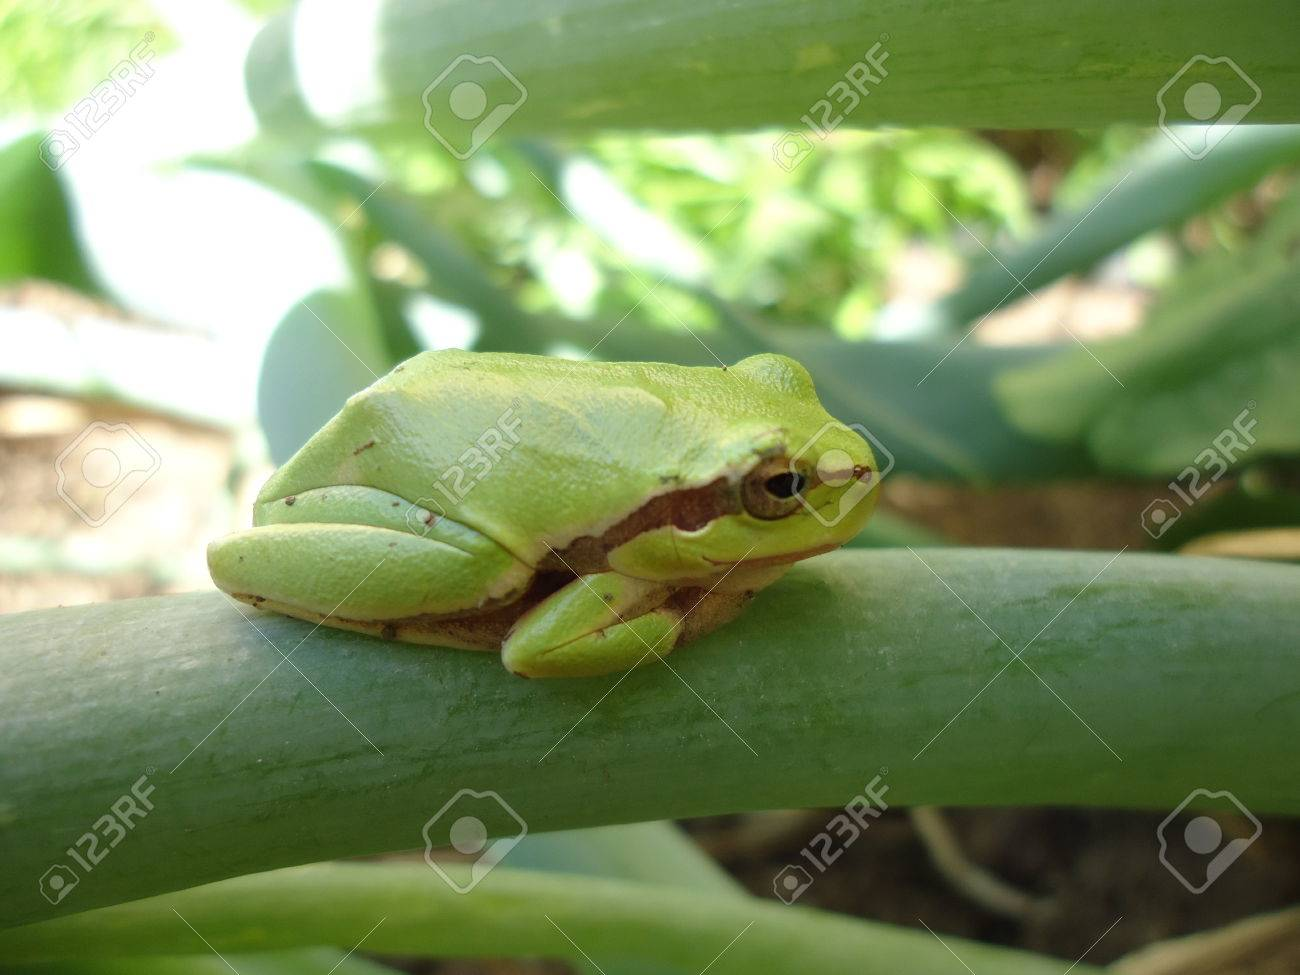 Green frog resting on onion leaf Stock Photo - 22643165